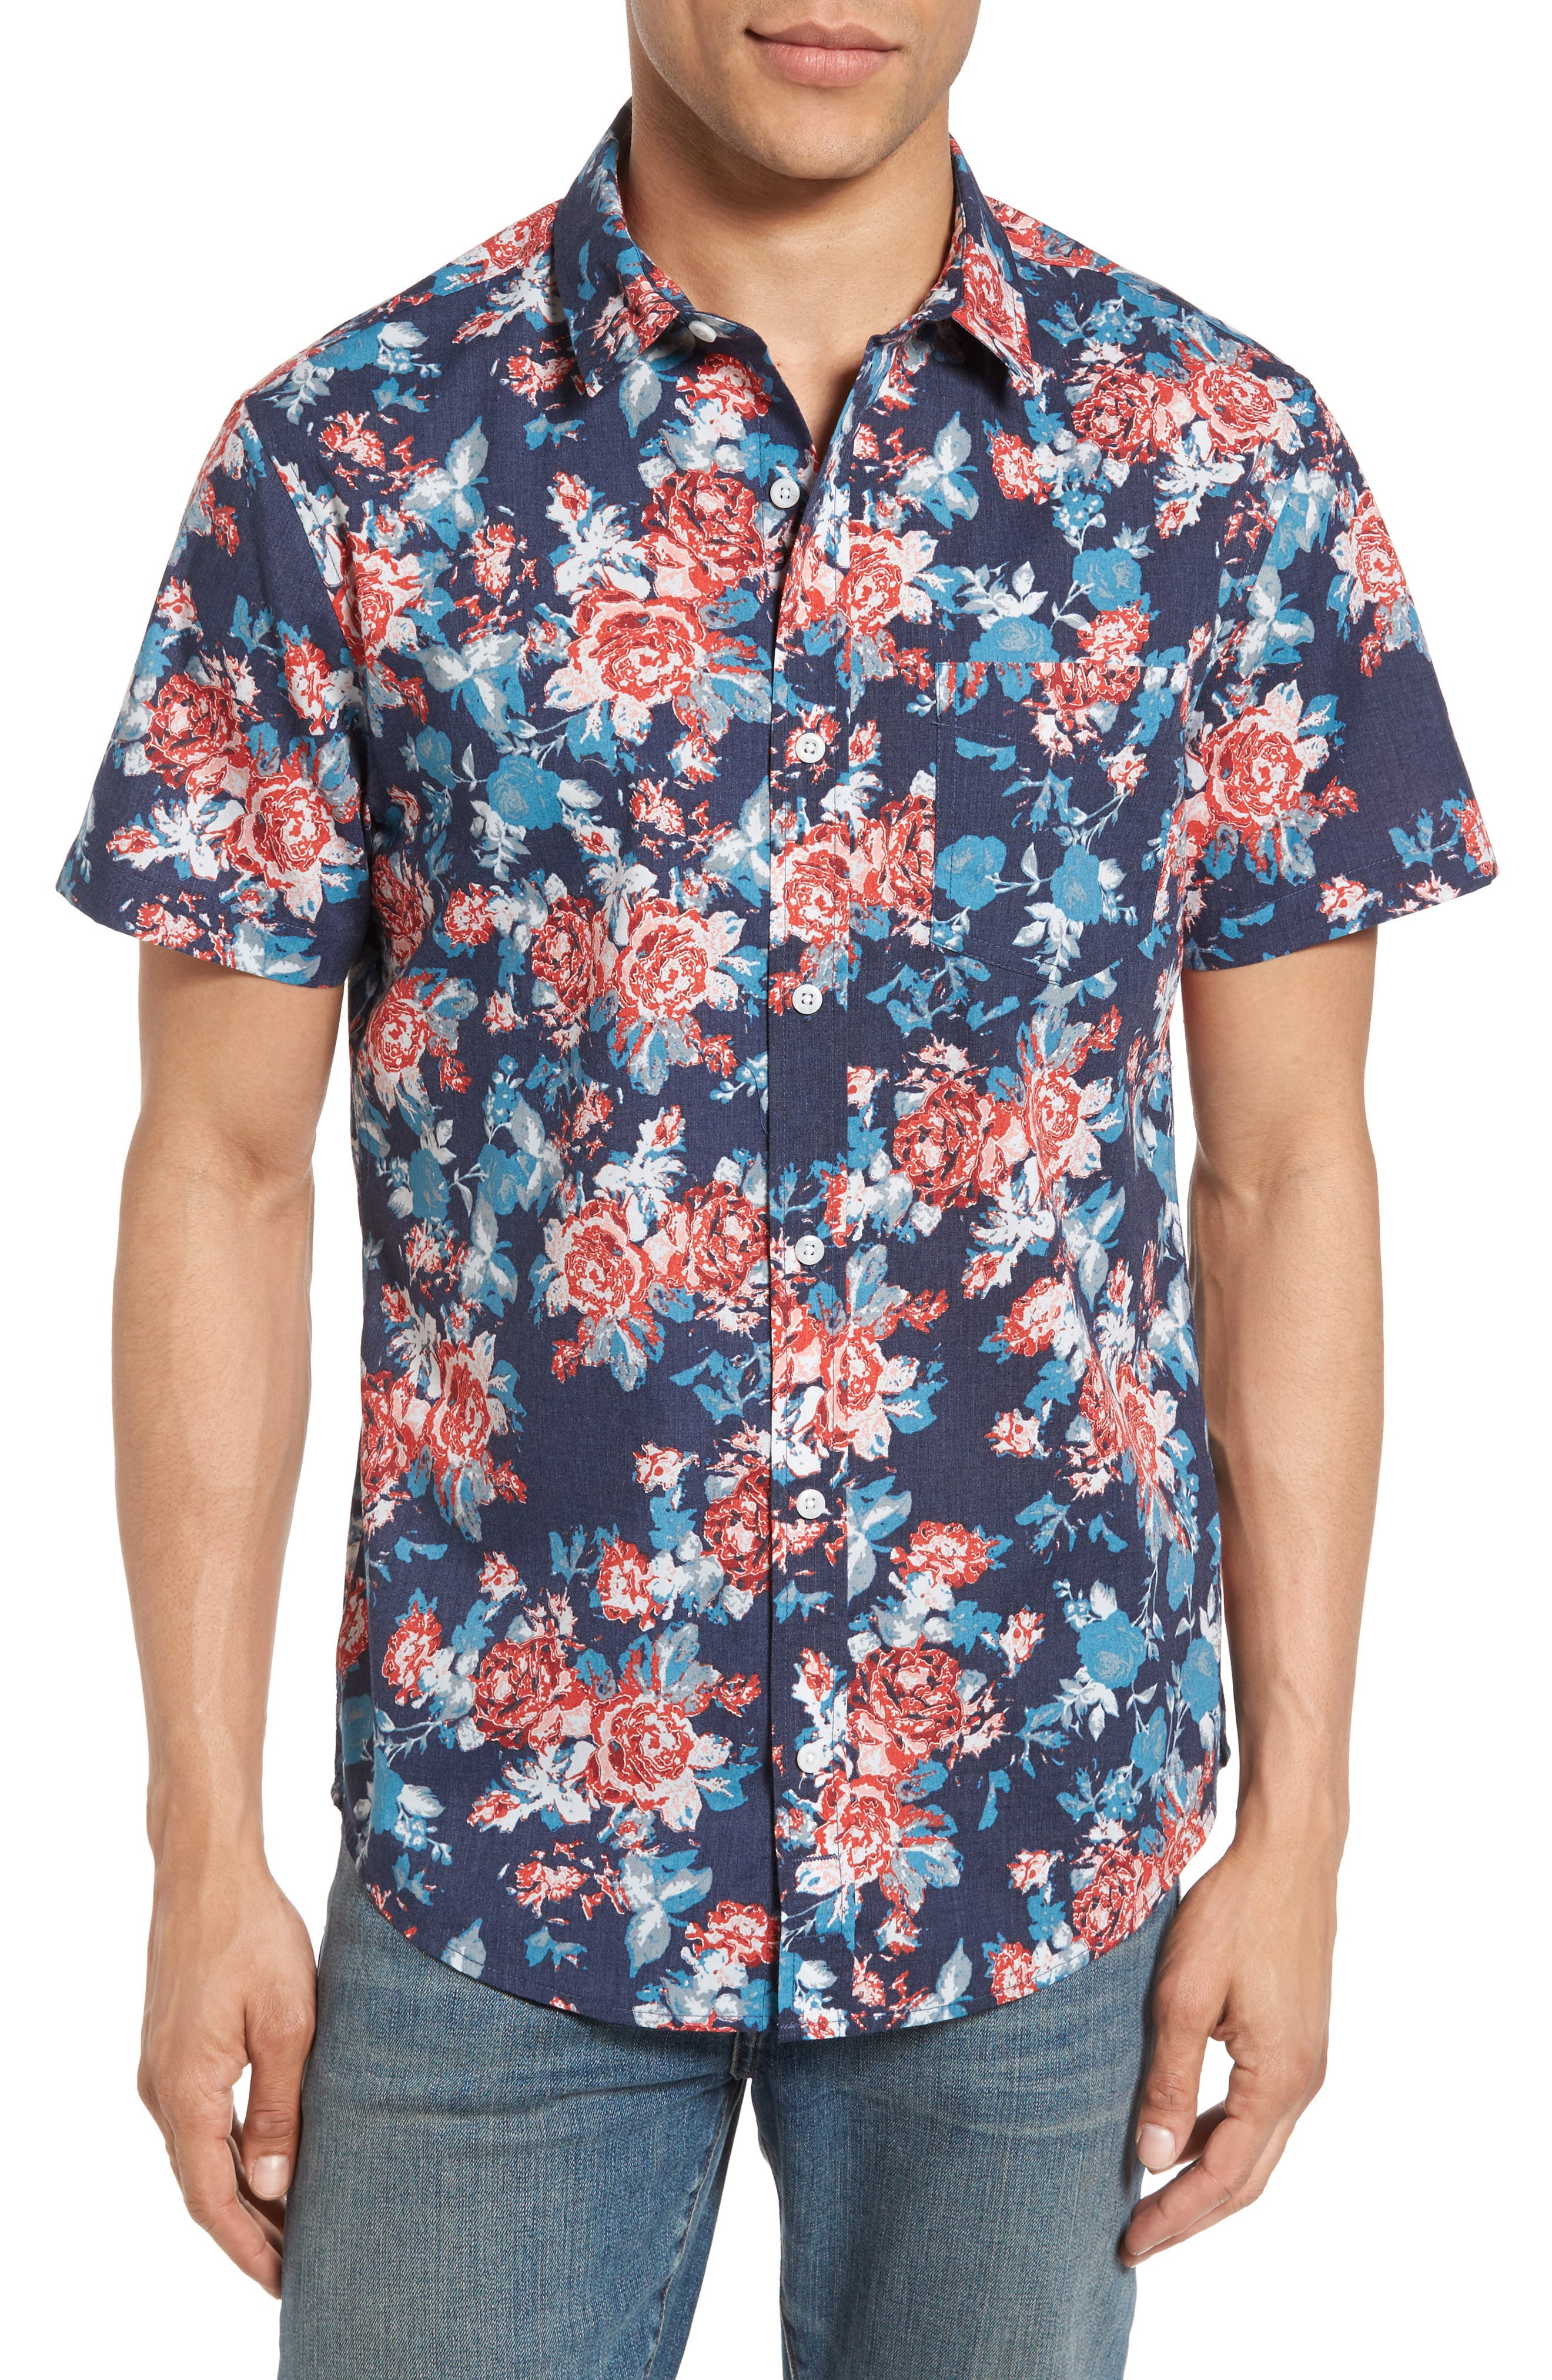 Main Image - 1901 Wallpaper Floral Print Shirt